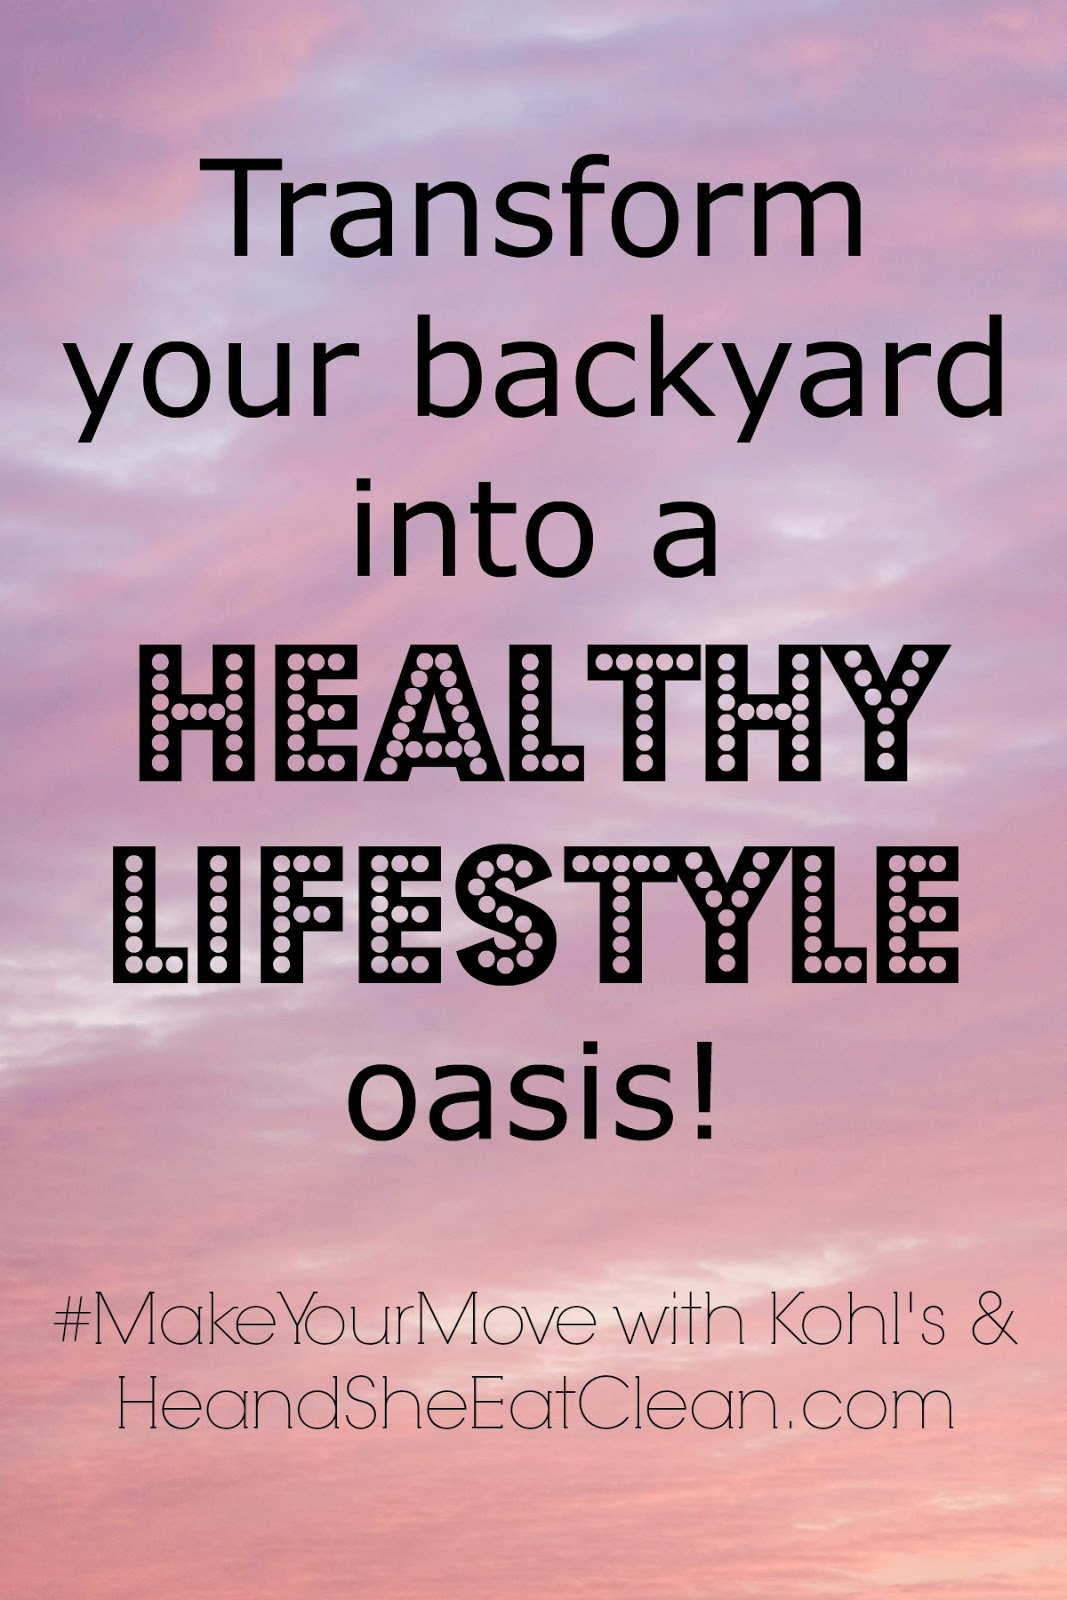 transform your backyard into a healthy lifestyle oasis food prep